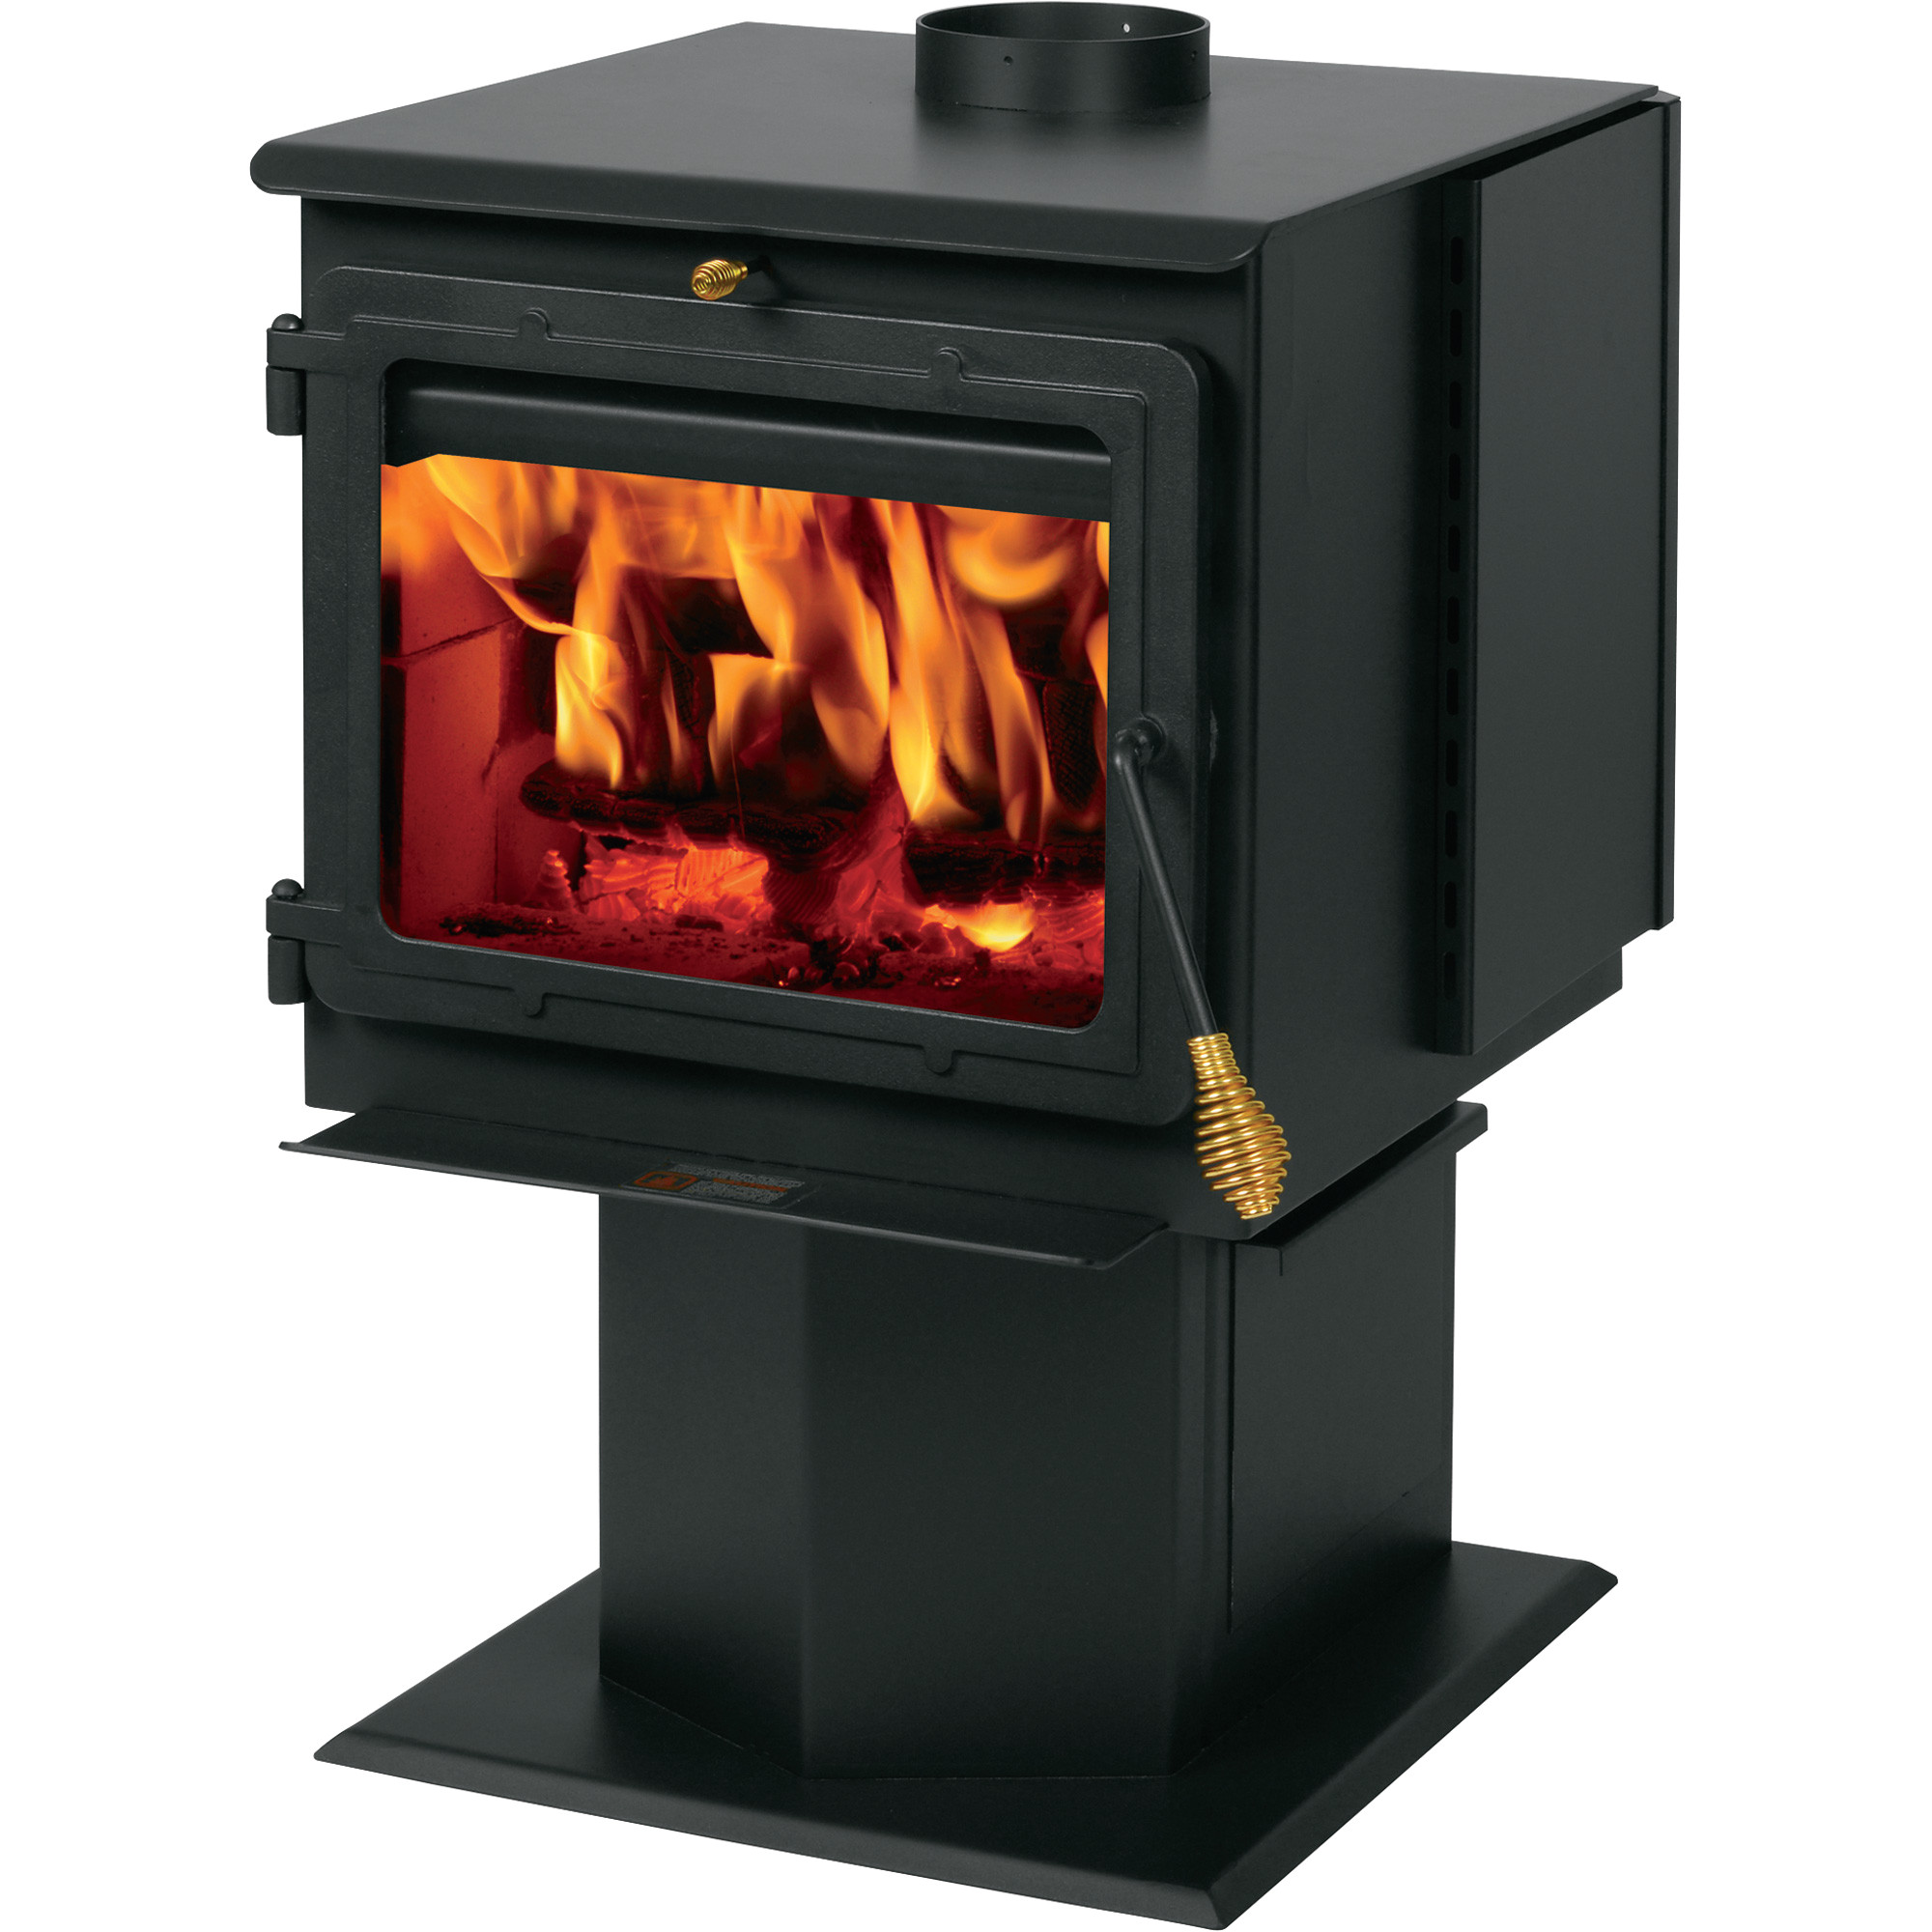 england stove works wood stove 80 000 btu epa certified model 50